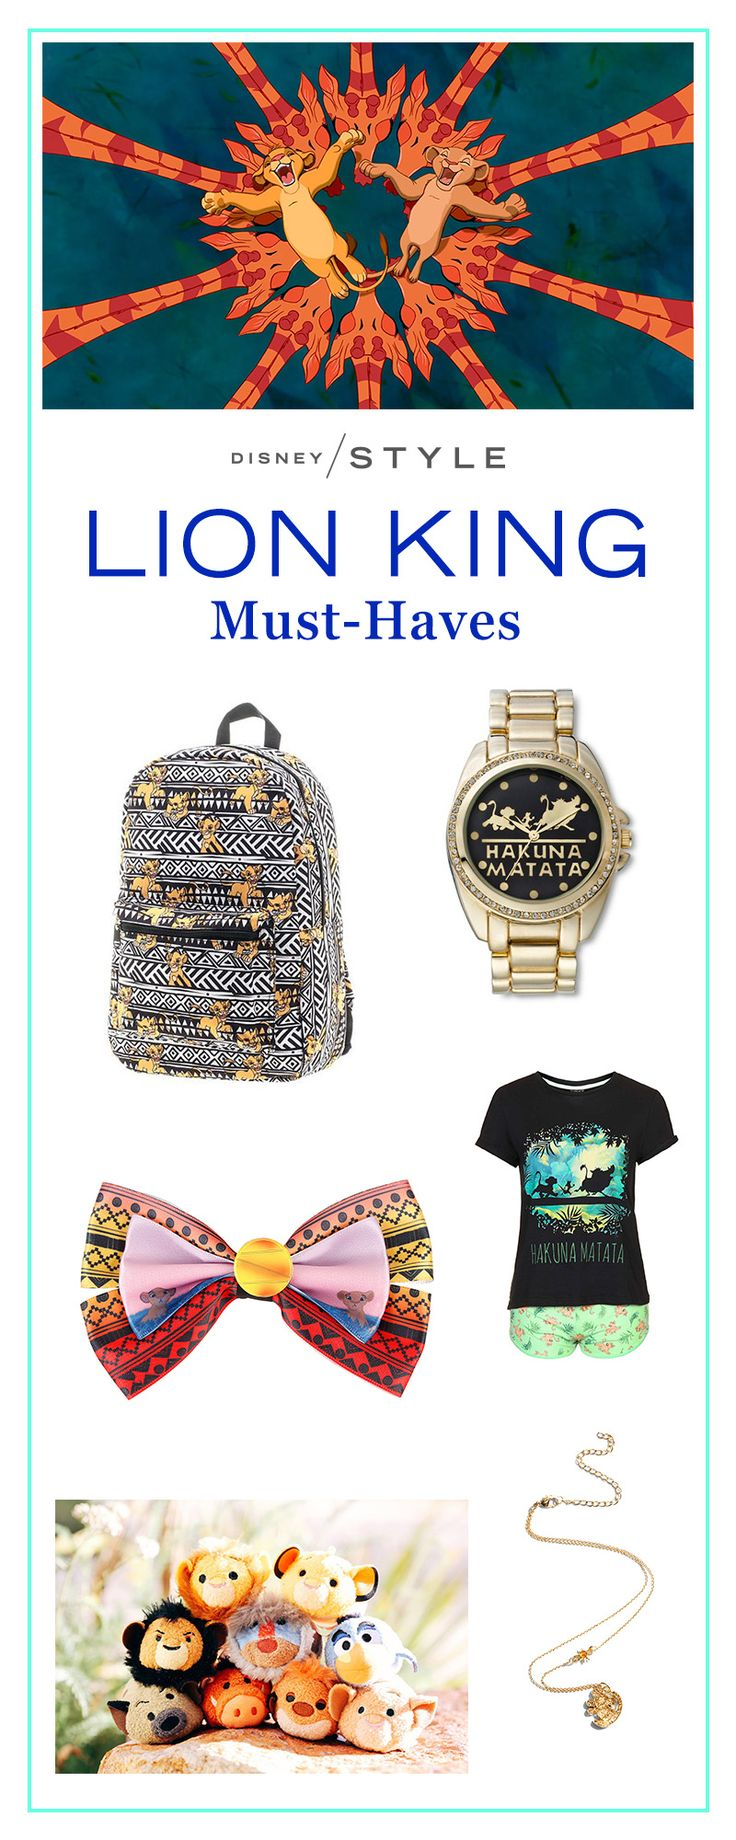 10 items Lion King fans need right now. | If you love Lion King, you need these accessories and fashions inspired by Simba and gang. | [ http://blogs.disney.com/disney-style/fashion/2016/02/27/10-things-lion-king-fans-need-right-now/#lion-king-shirt ]